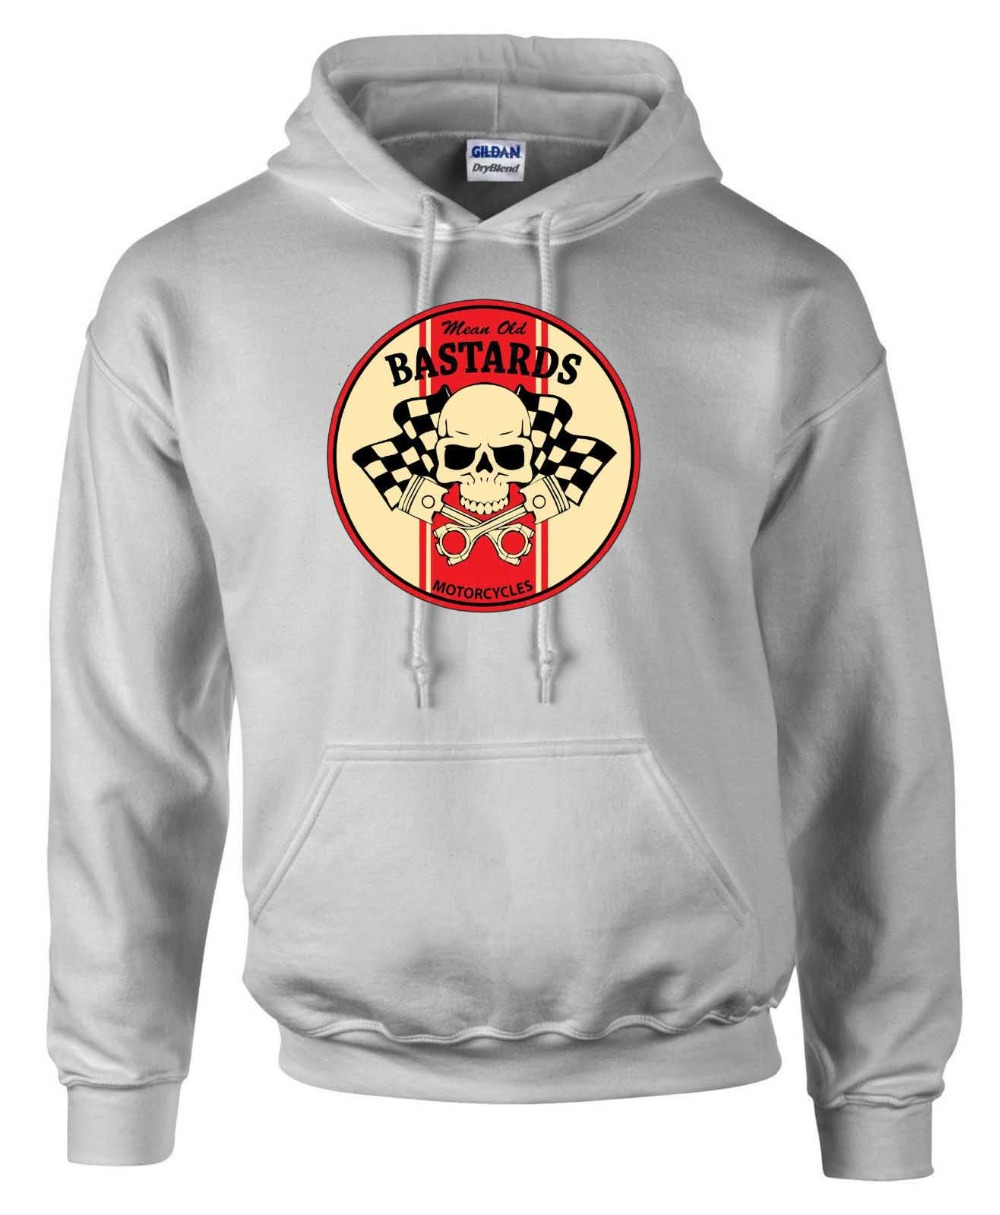 Biker Mean Old Bastards  Round Style  Motorcycle Printed Hoodie in 5 Sizes